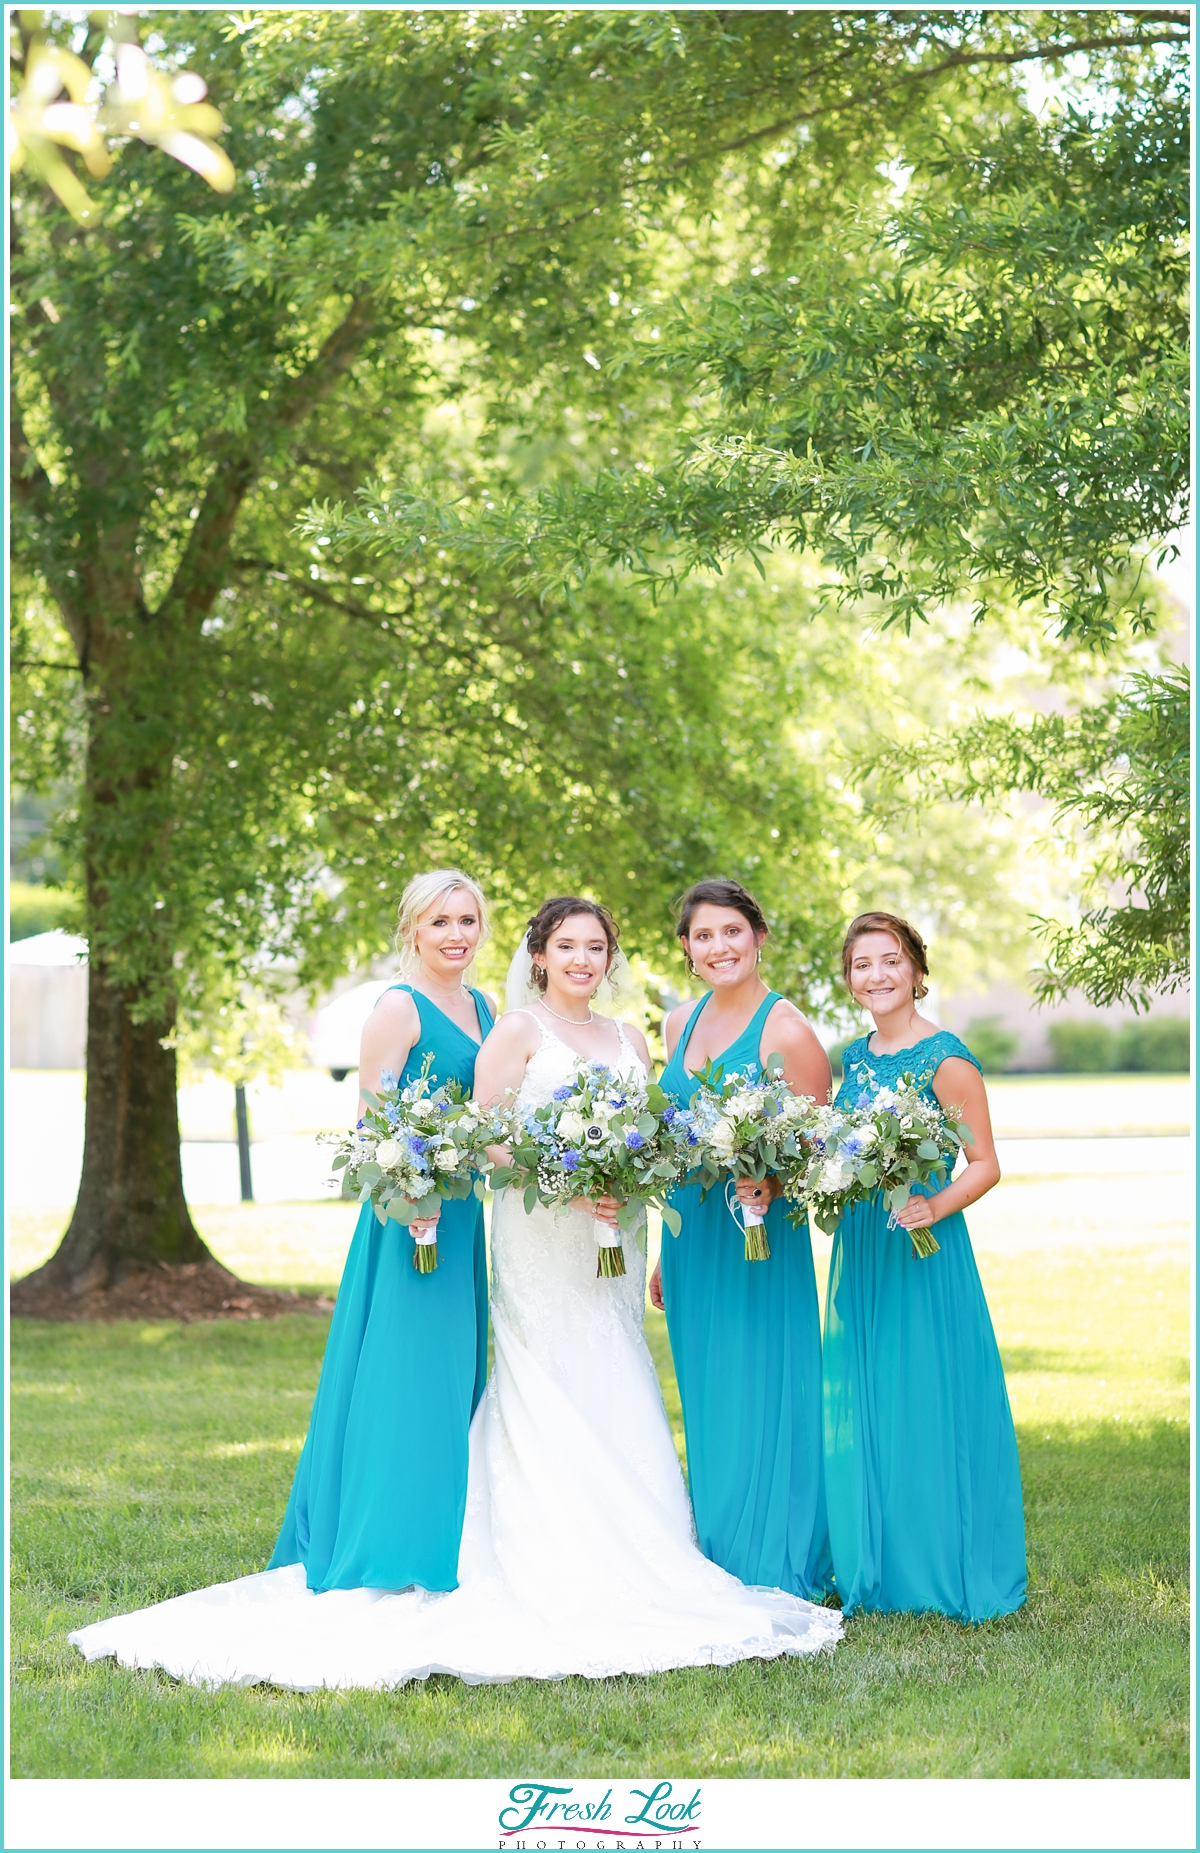 bride and bridesmaids wearing teal